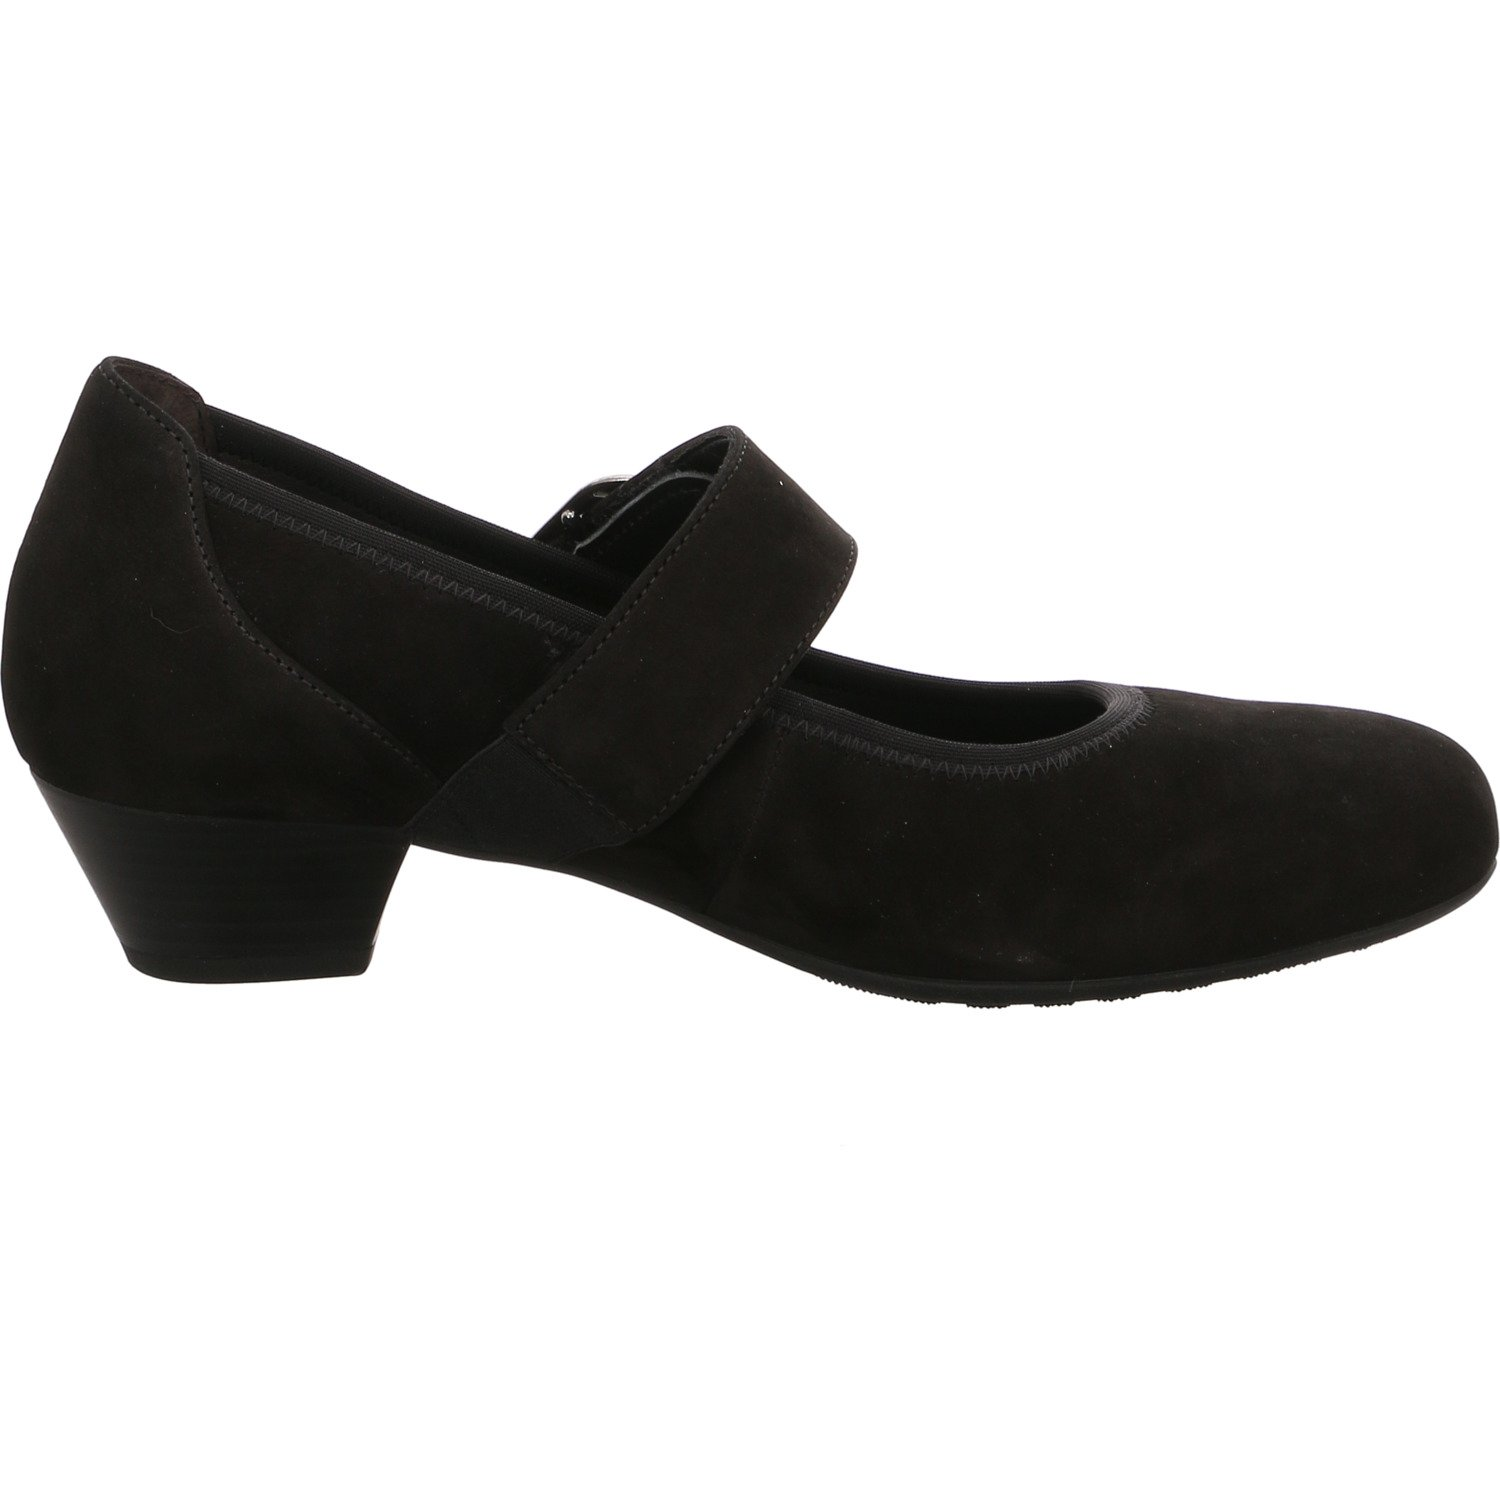 Gabor Damen Pumps Spangenpumps 06.139.47 06.139.47 06.139.47 06.139.47 Pumps schwarz 192240 e3d1db